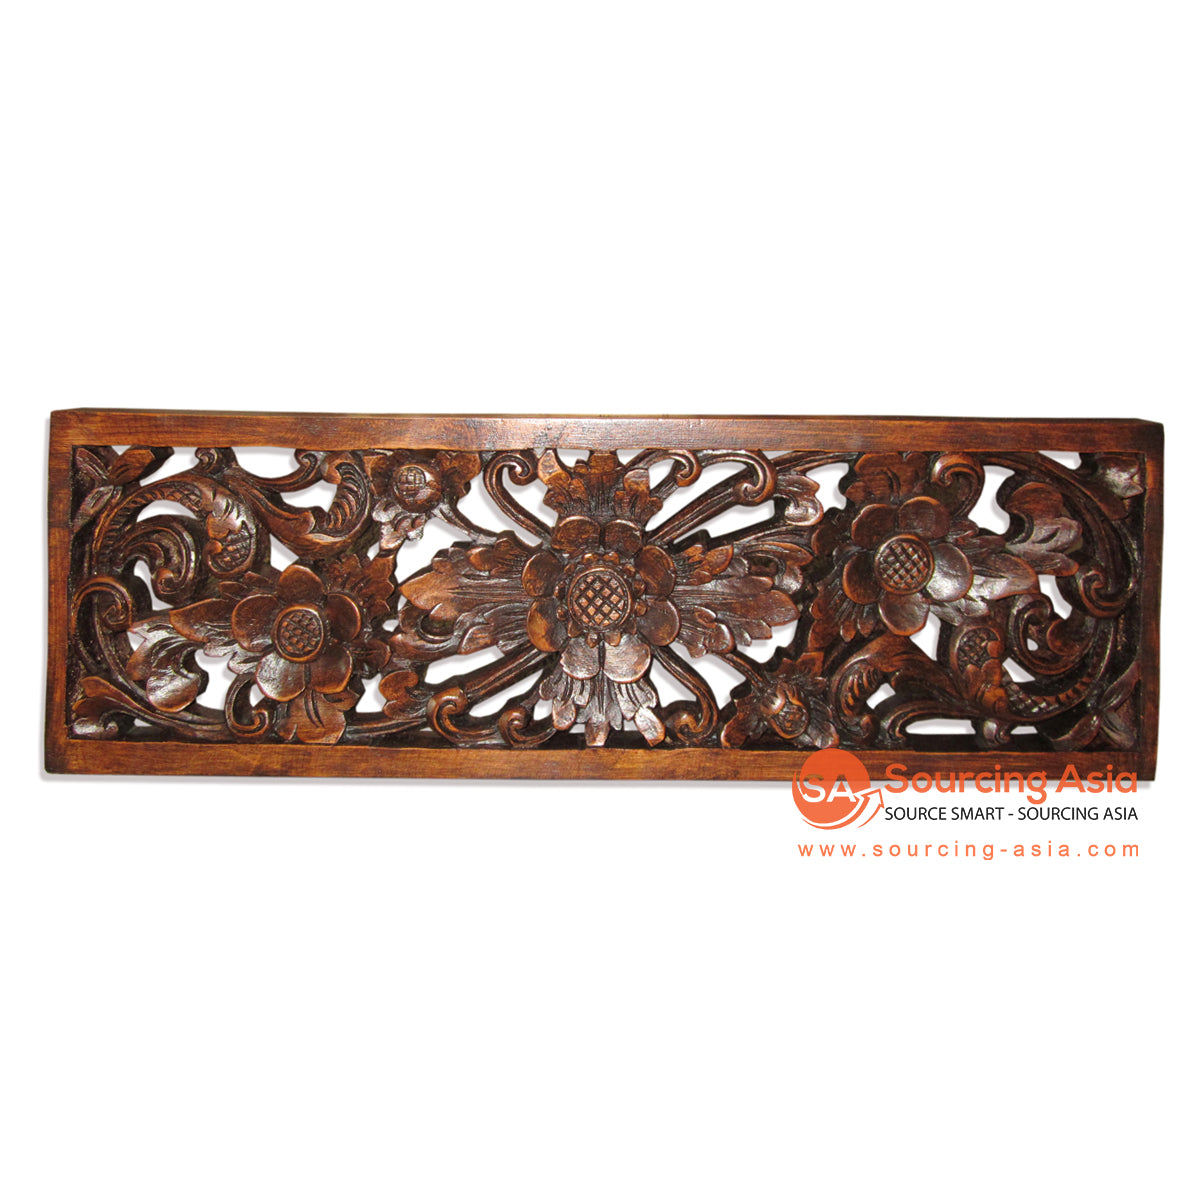 GUR006-A WOODEN WALL DECORATION WITH CARVING